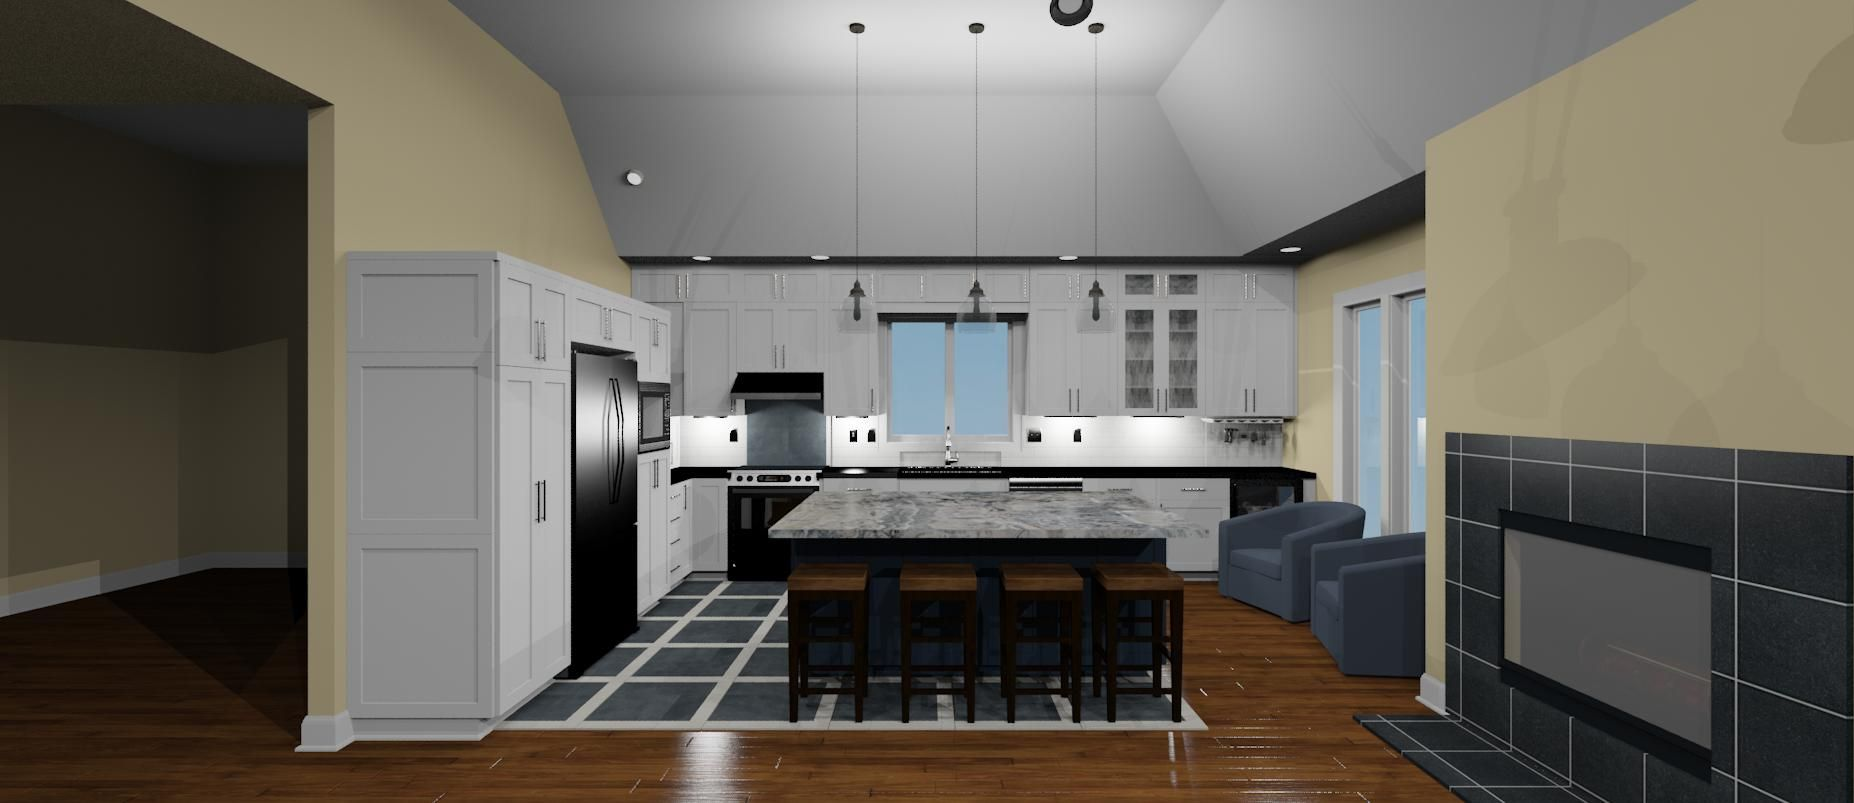 Chief Architect Rendering Of Blue And White Kitchen Designed By